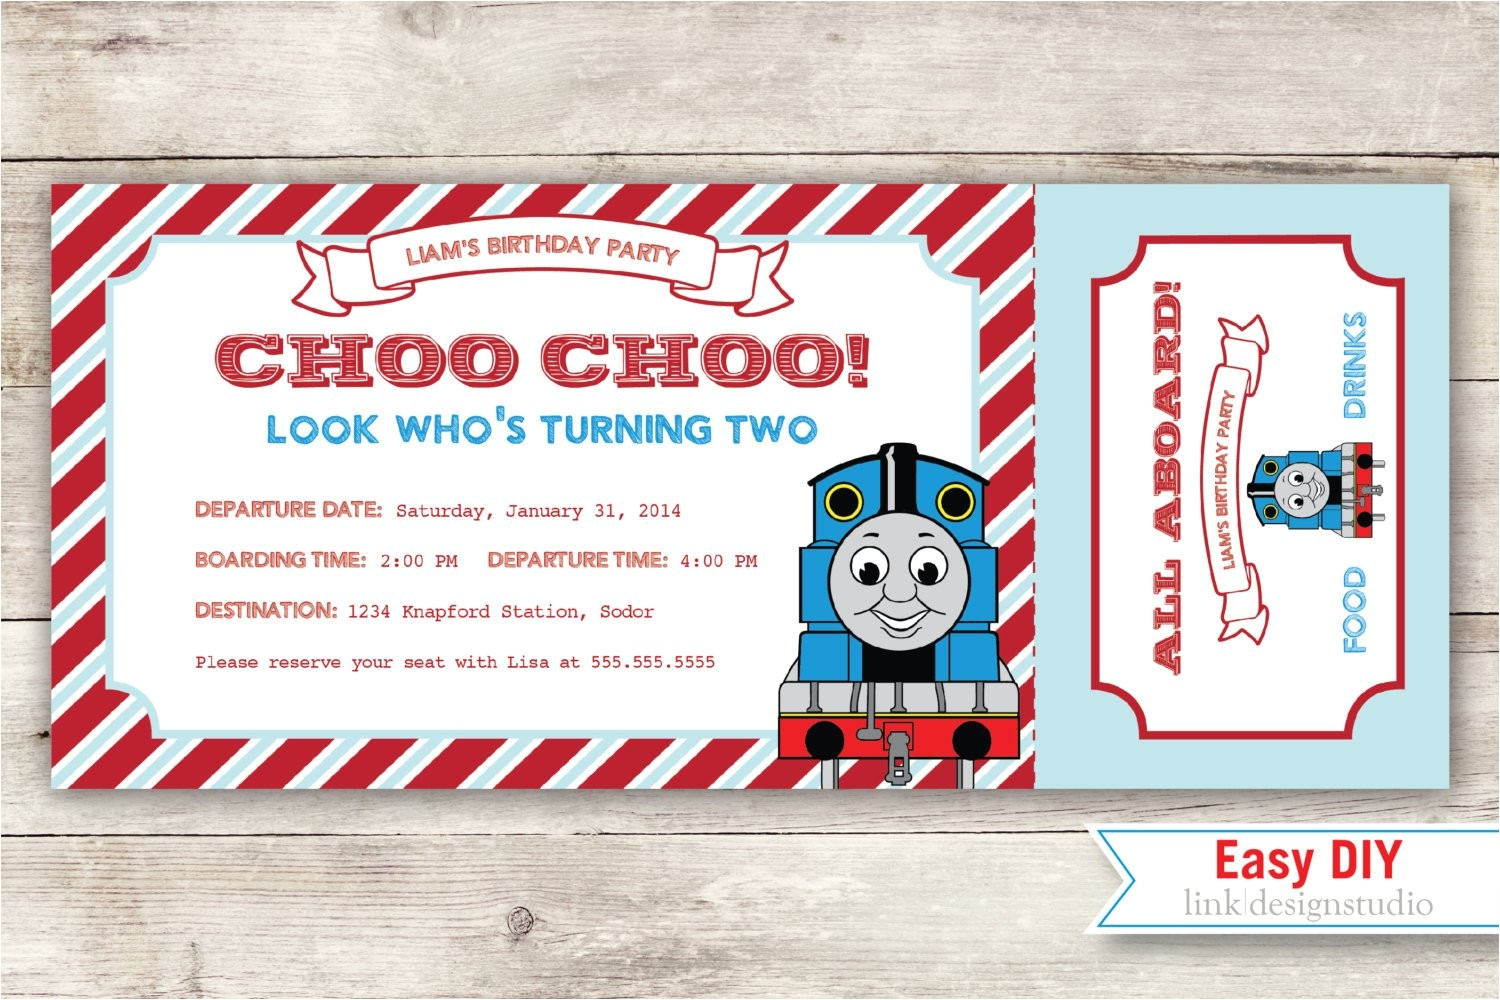 Thomas the Tank Engine Party Invitations Thomas the Tank Engine Birthday Invitation by Linkdesignstudio